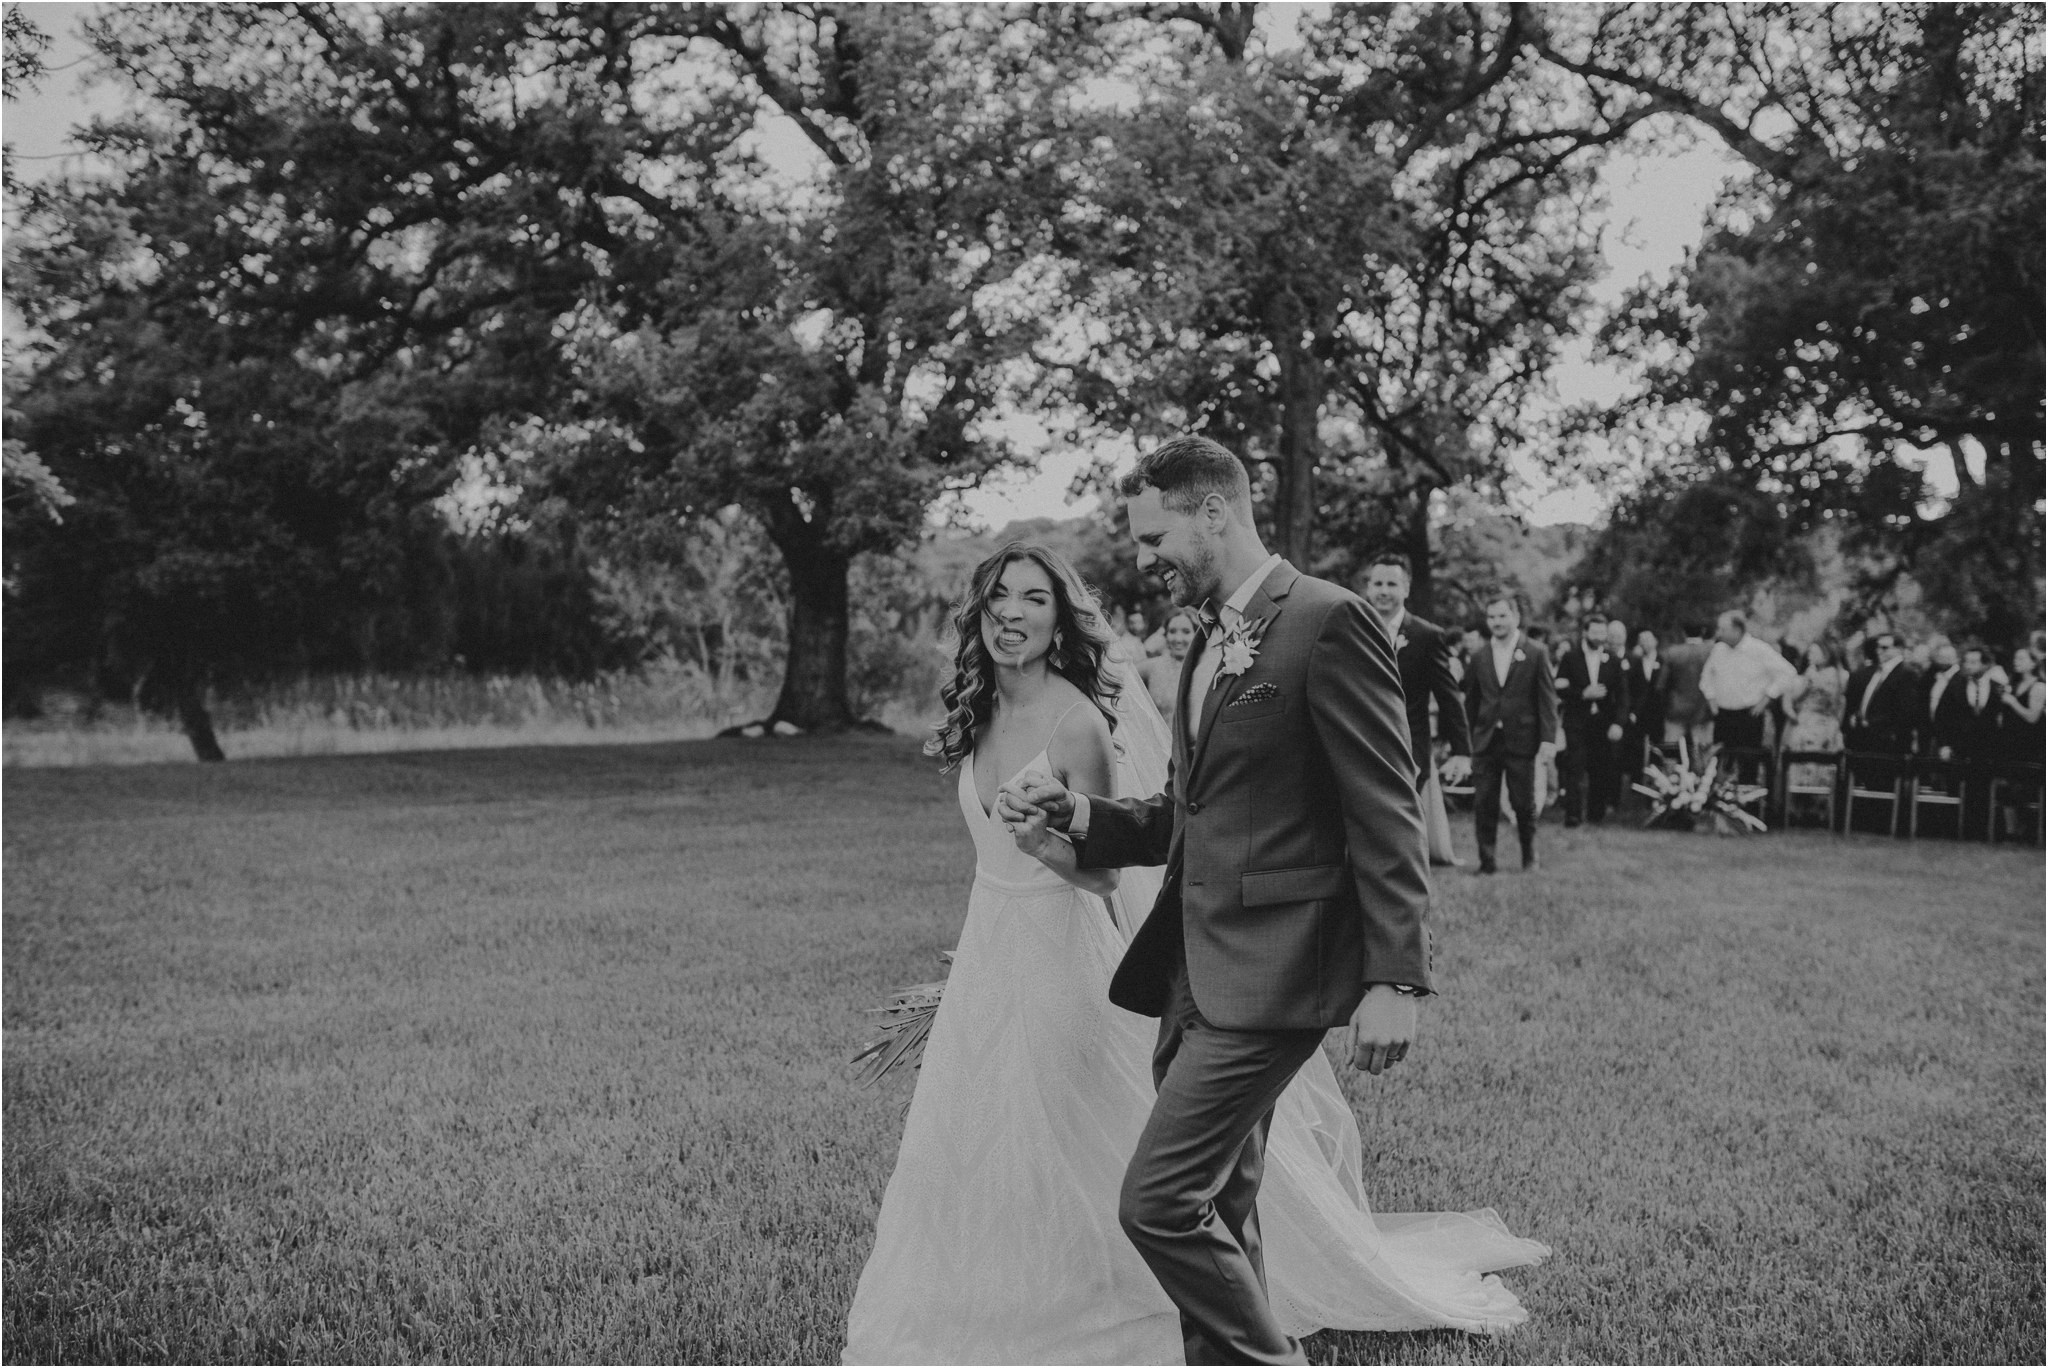 jillian-and-scott-pecan-springs-ranch-texas-and-washington-wedding-photographer-076.jpg